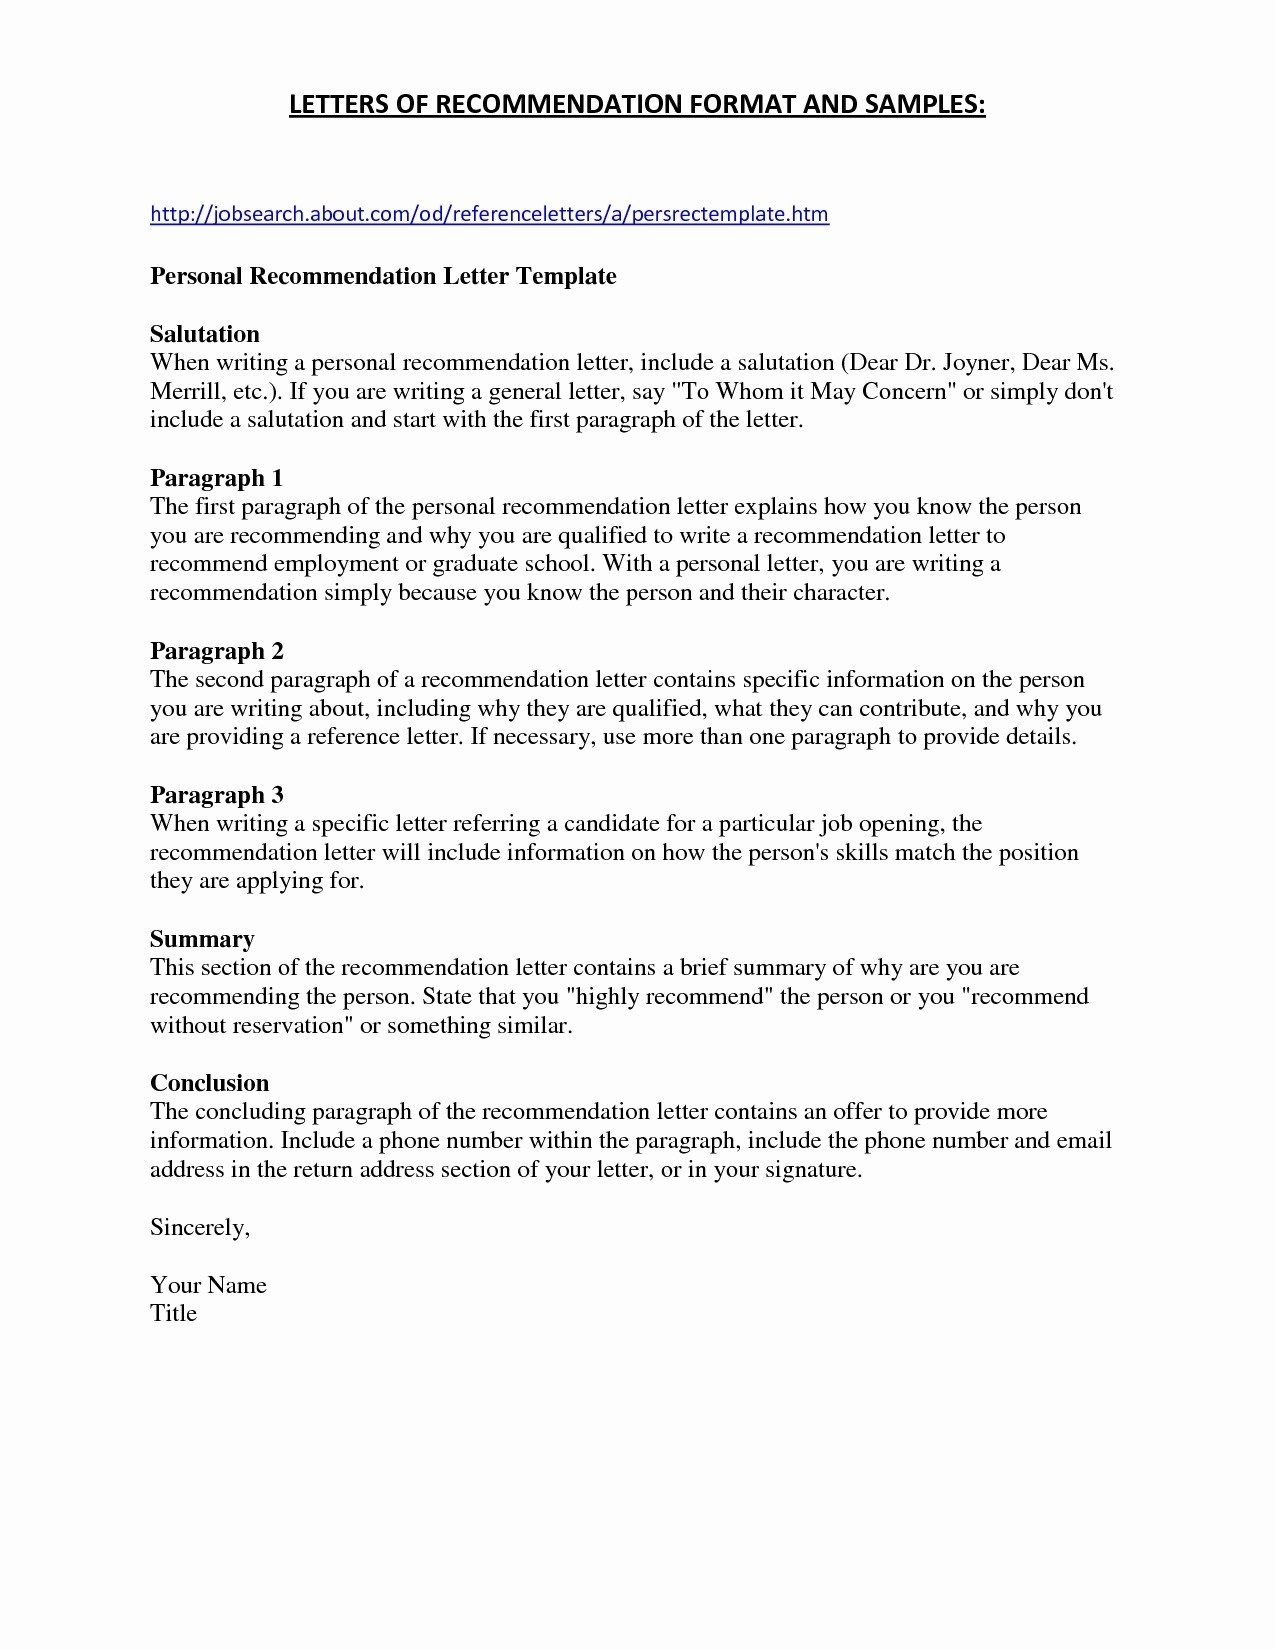 Resume Sample Business Analyst - Functional Business Analyst Resume New It Business Analyst Resume